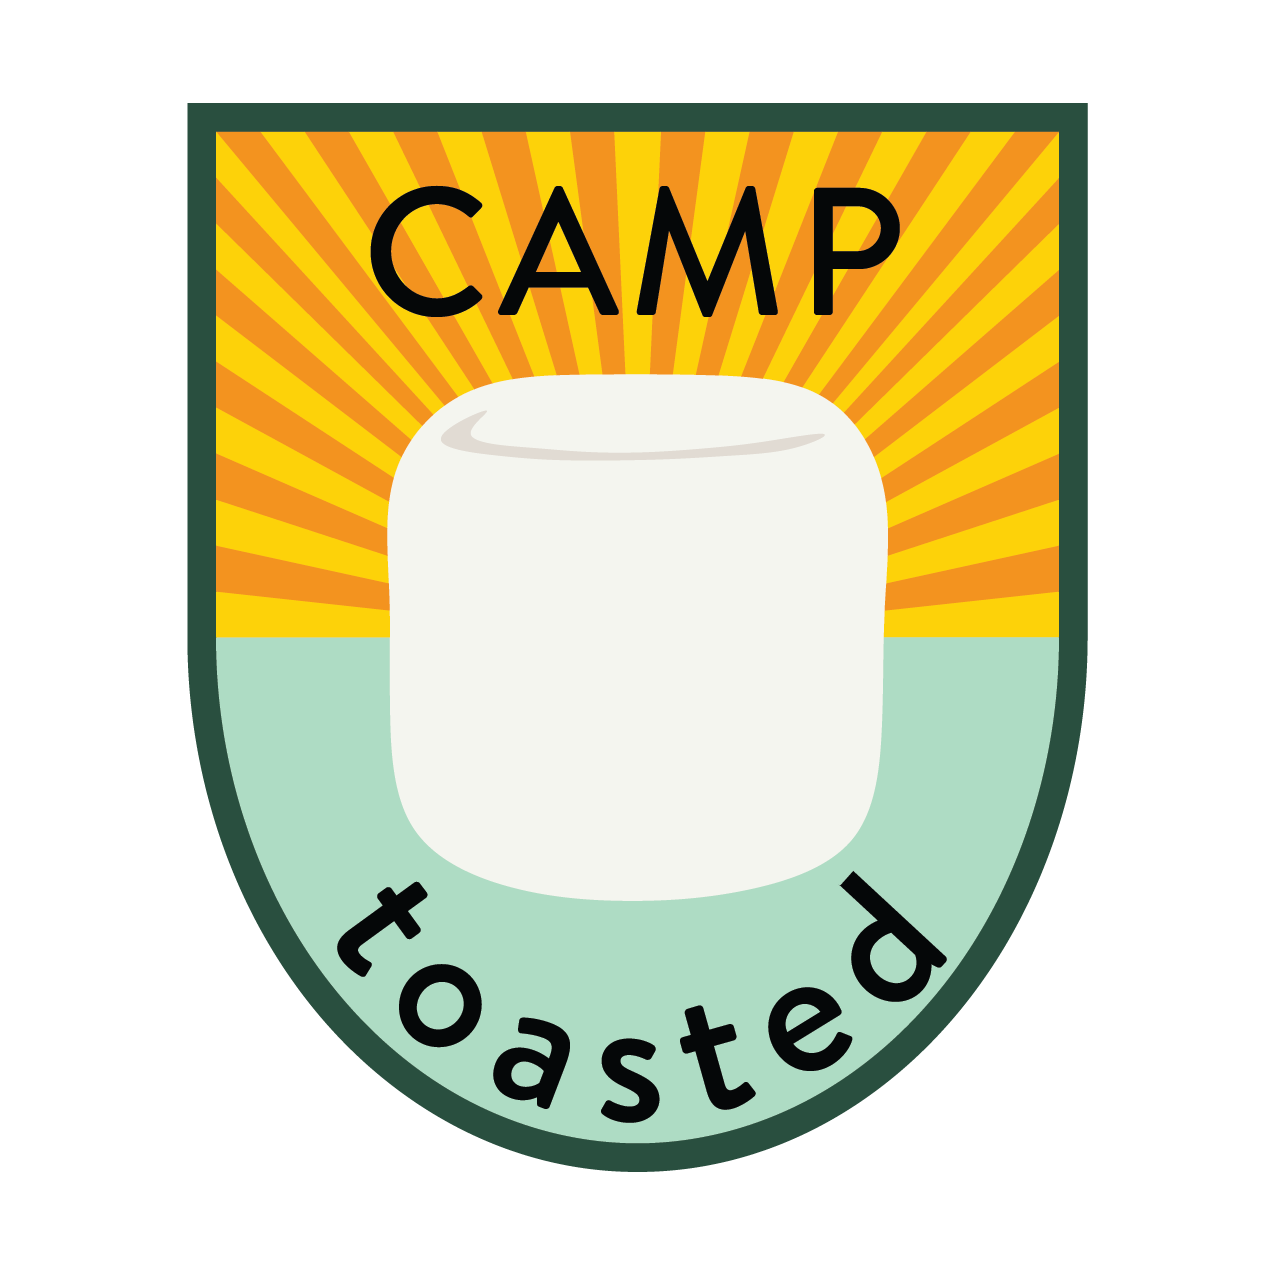 camp toasted